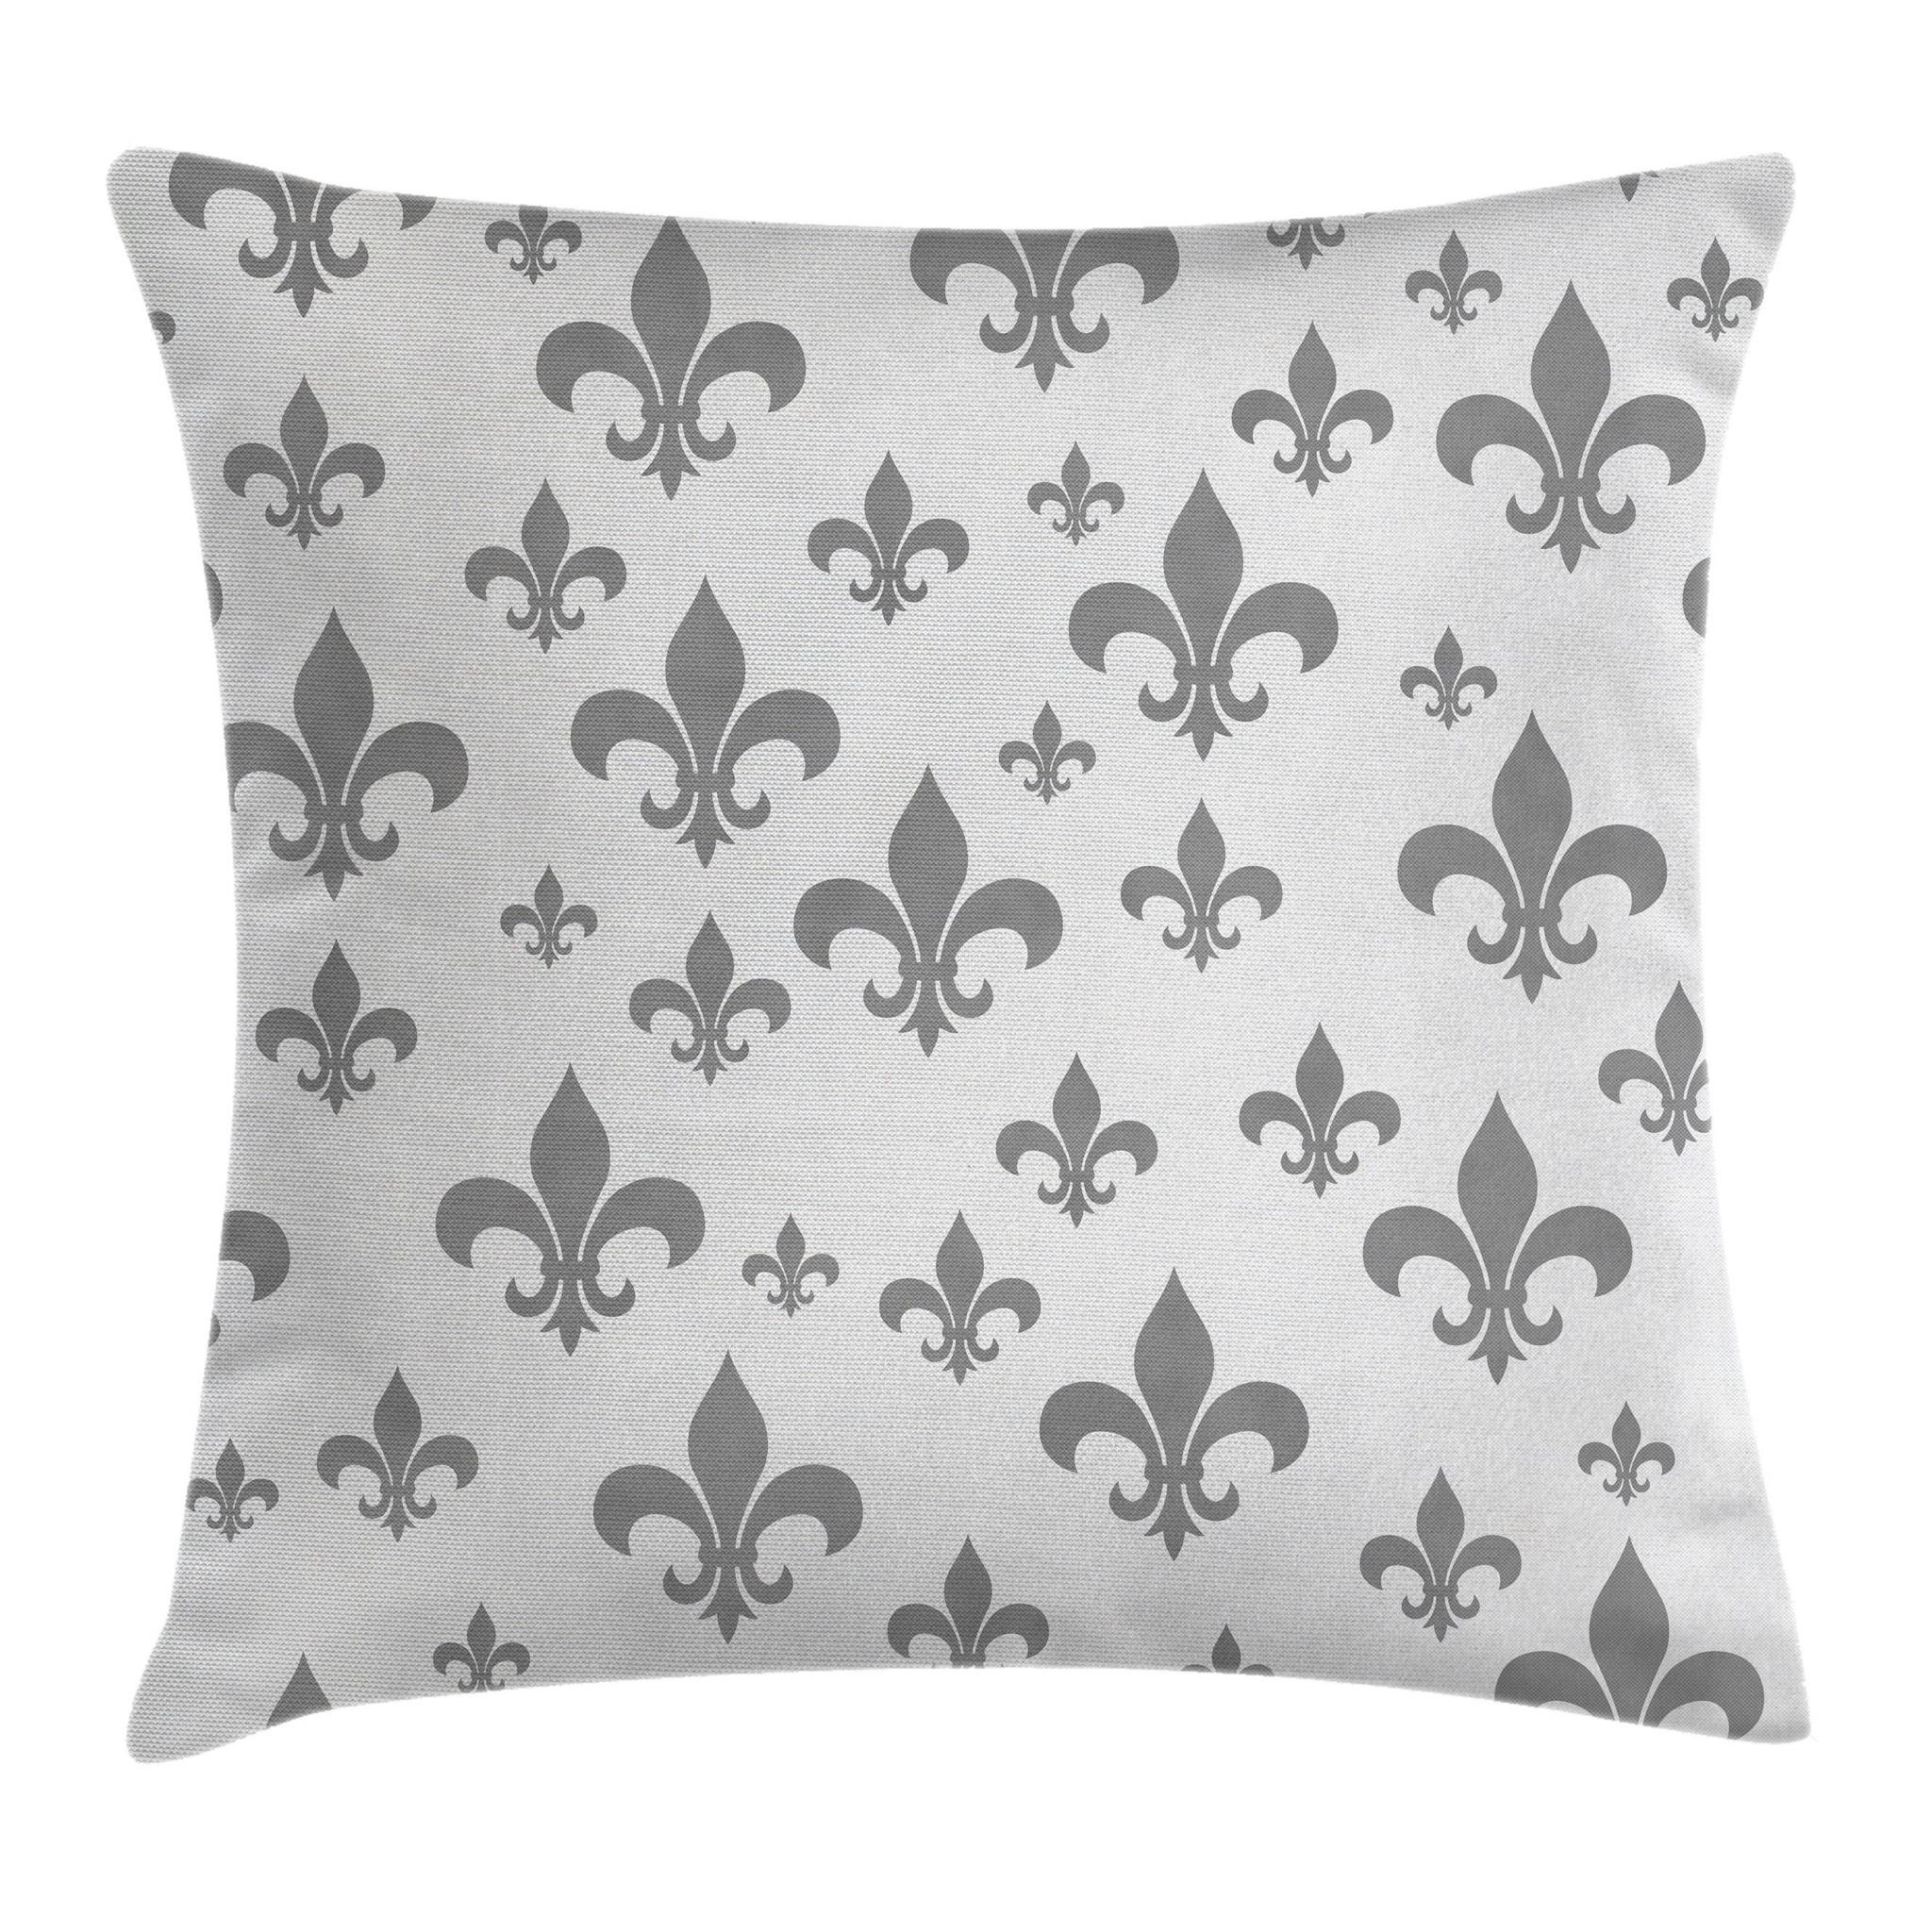 Ambesonne Fleur De Lis Throw Pillow Cushion Cover, Lily Pattern Classic Retro Royal Vintage European Iris Ornamental Artwork, Decorative Square Accent Pillow Case, 16'' X 16'', Grey by Ambesonne